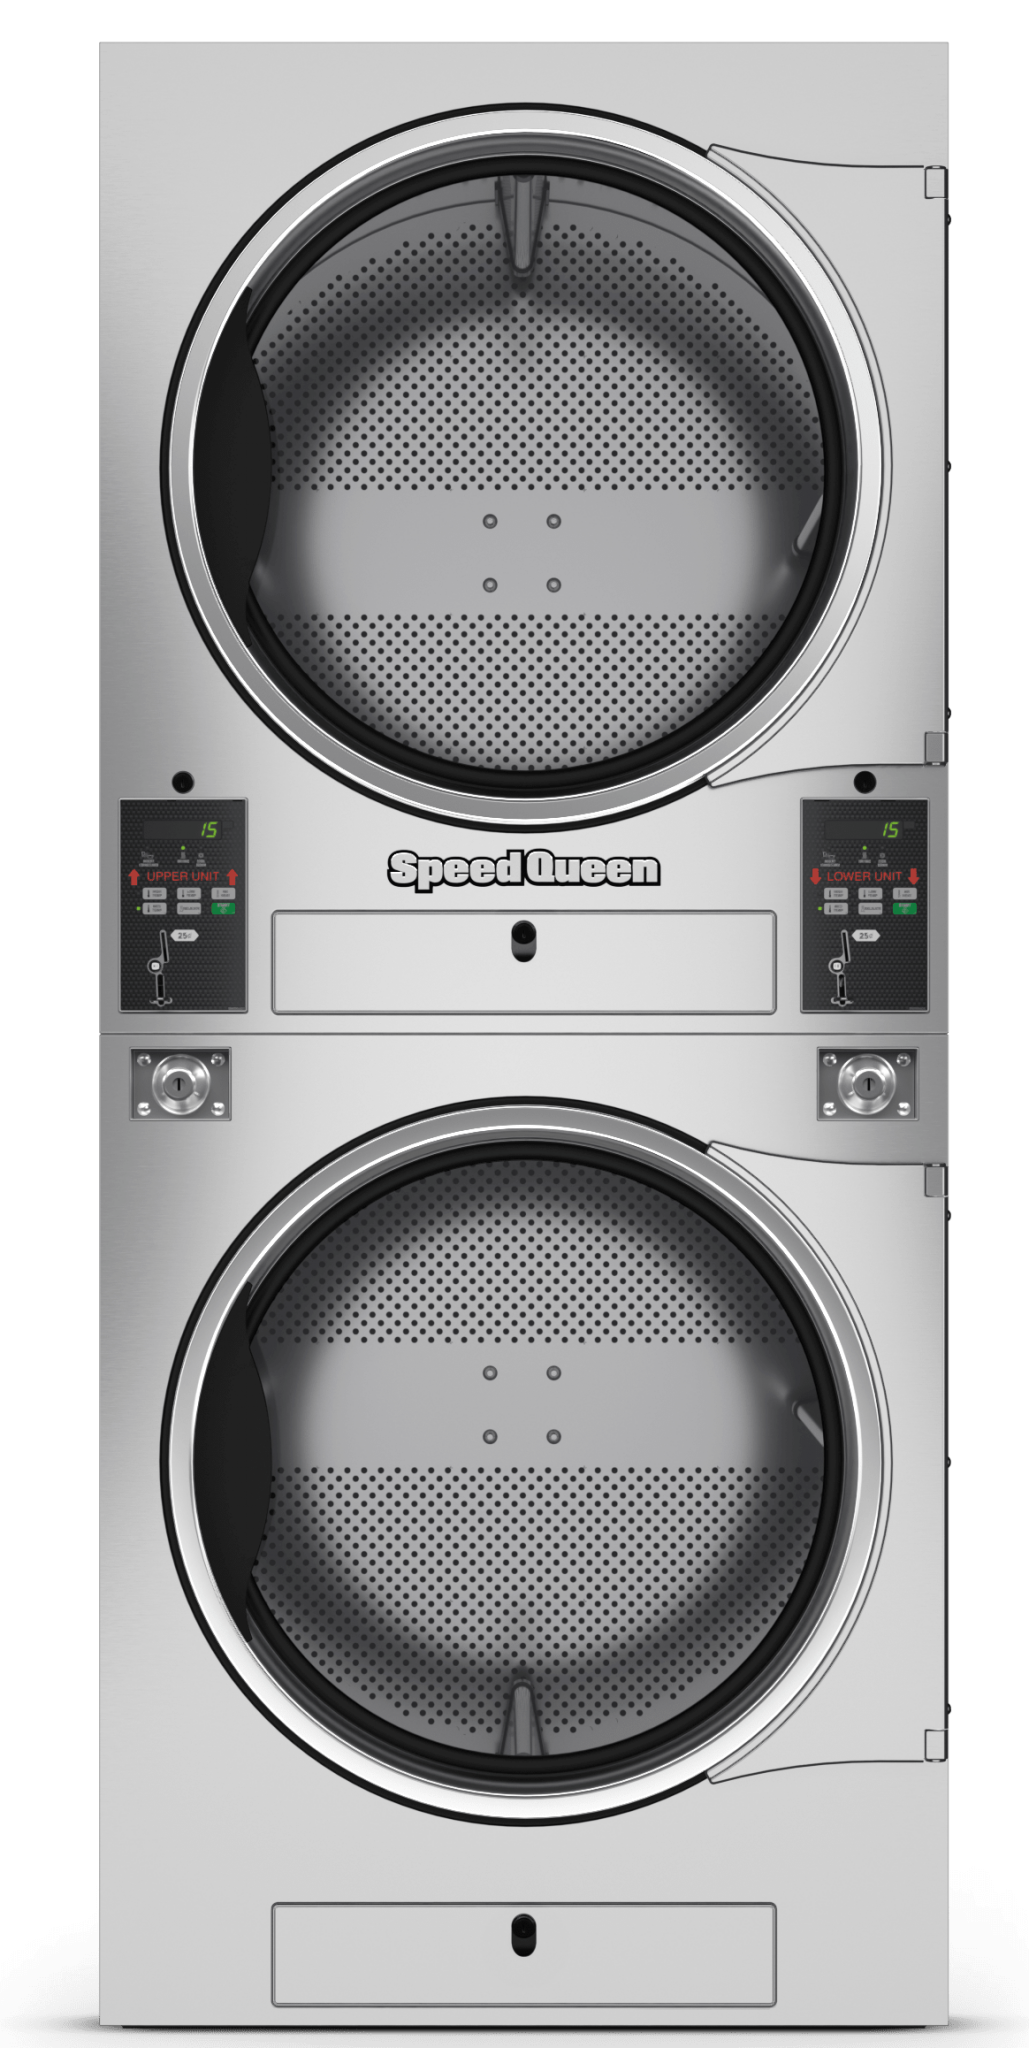 Speed Queen Stack Vended Tumble Dryer